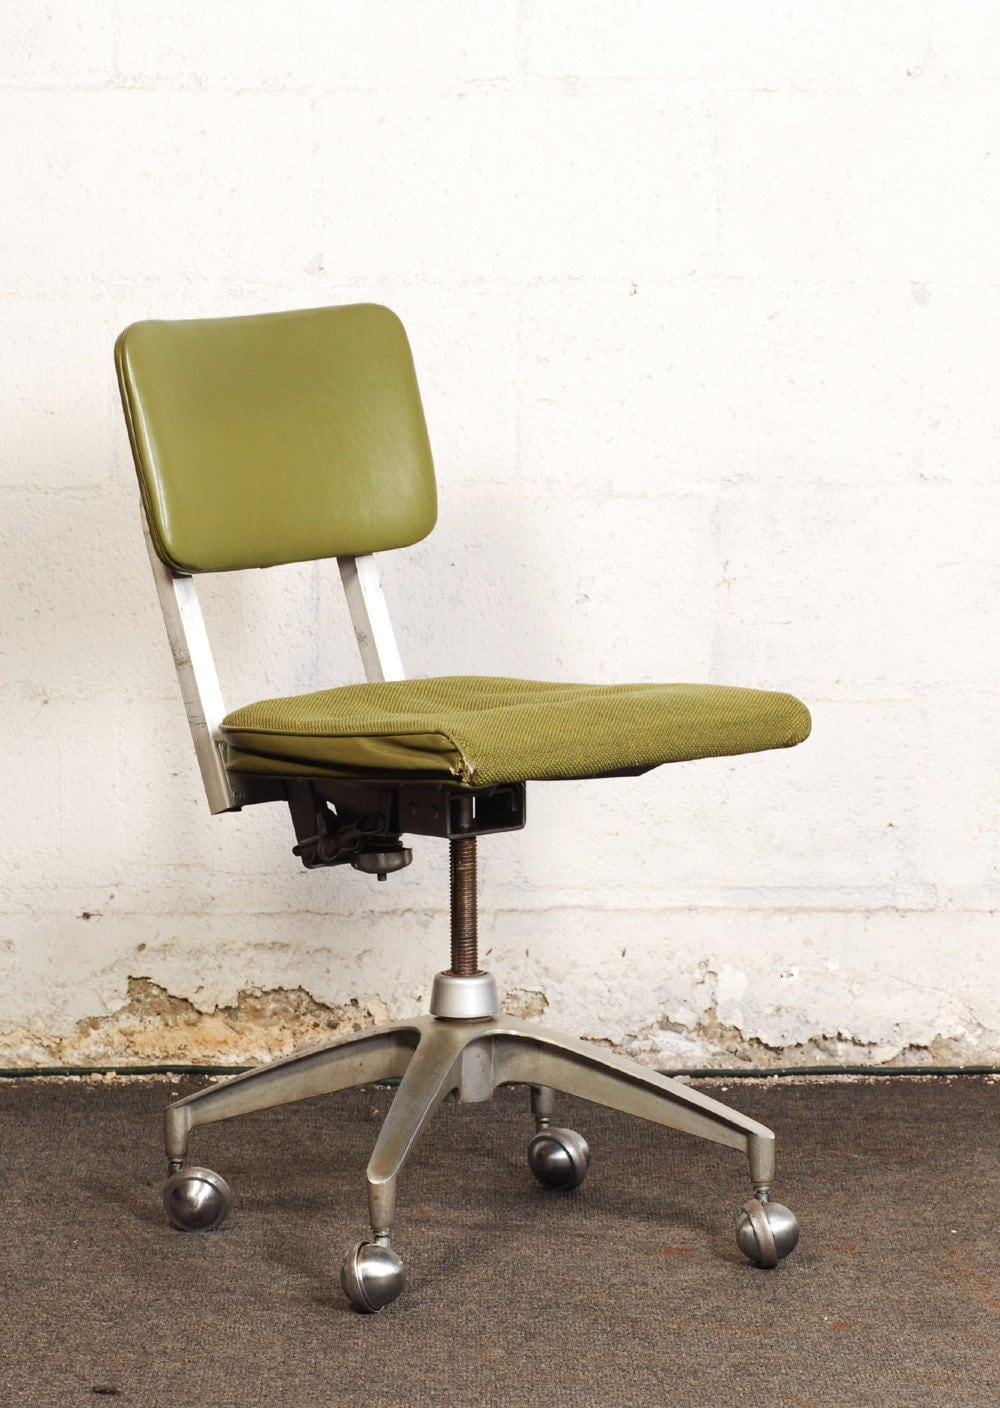 Mid Century Modern Industrial Metal Office Chair By